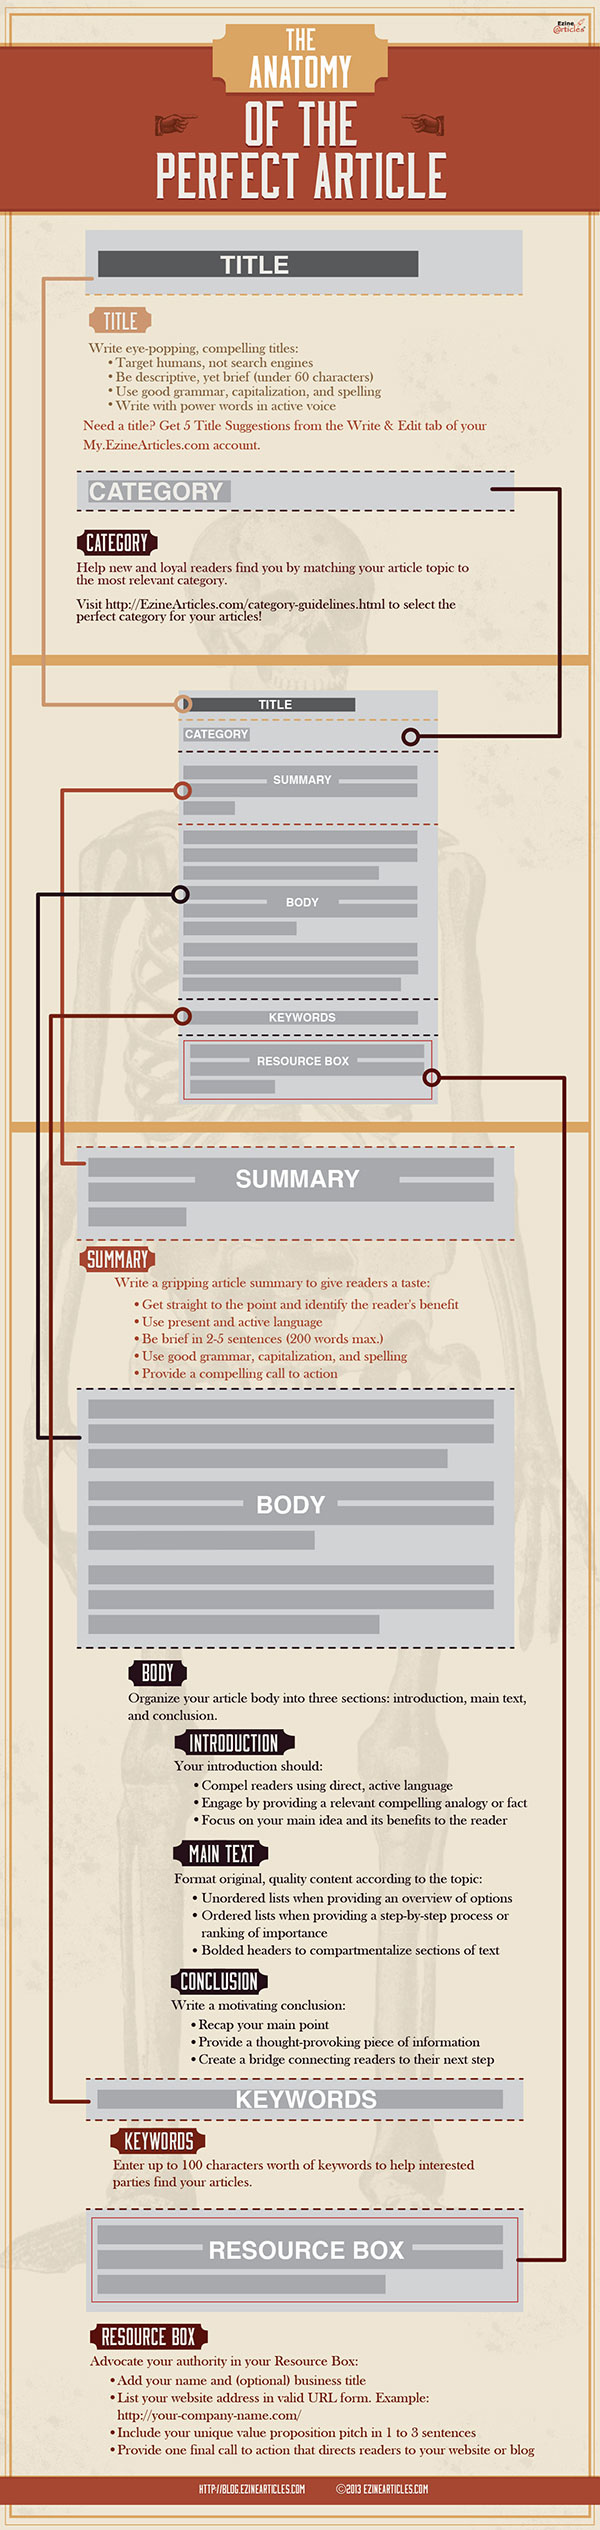 The Anatomy Of The Perfect Article Article Writing Marketing